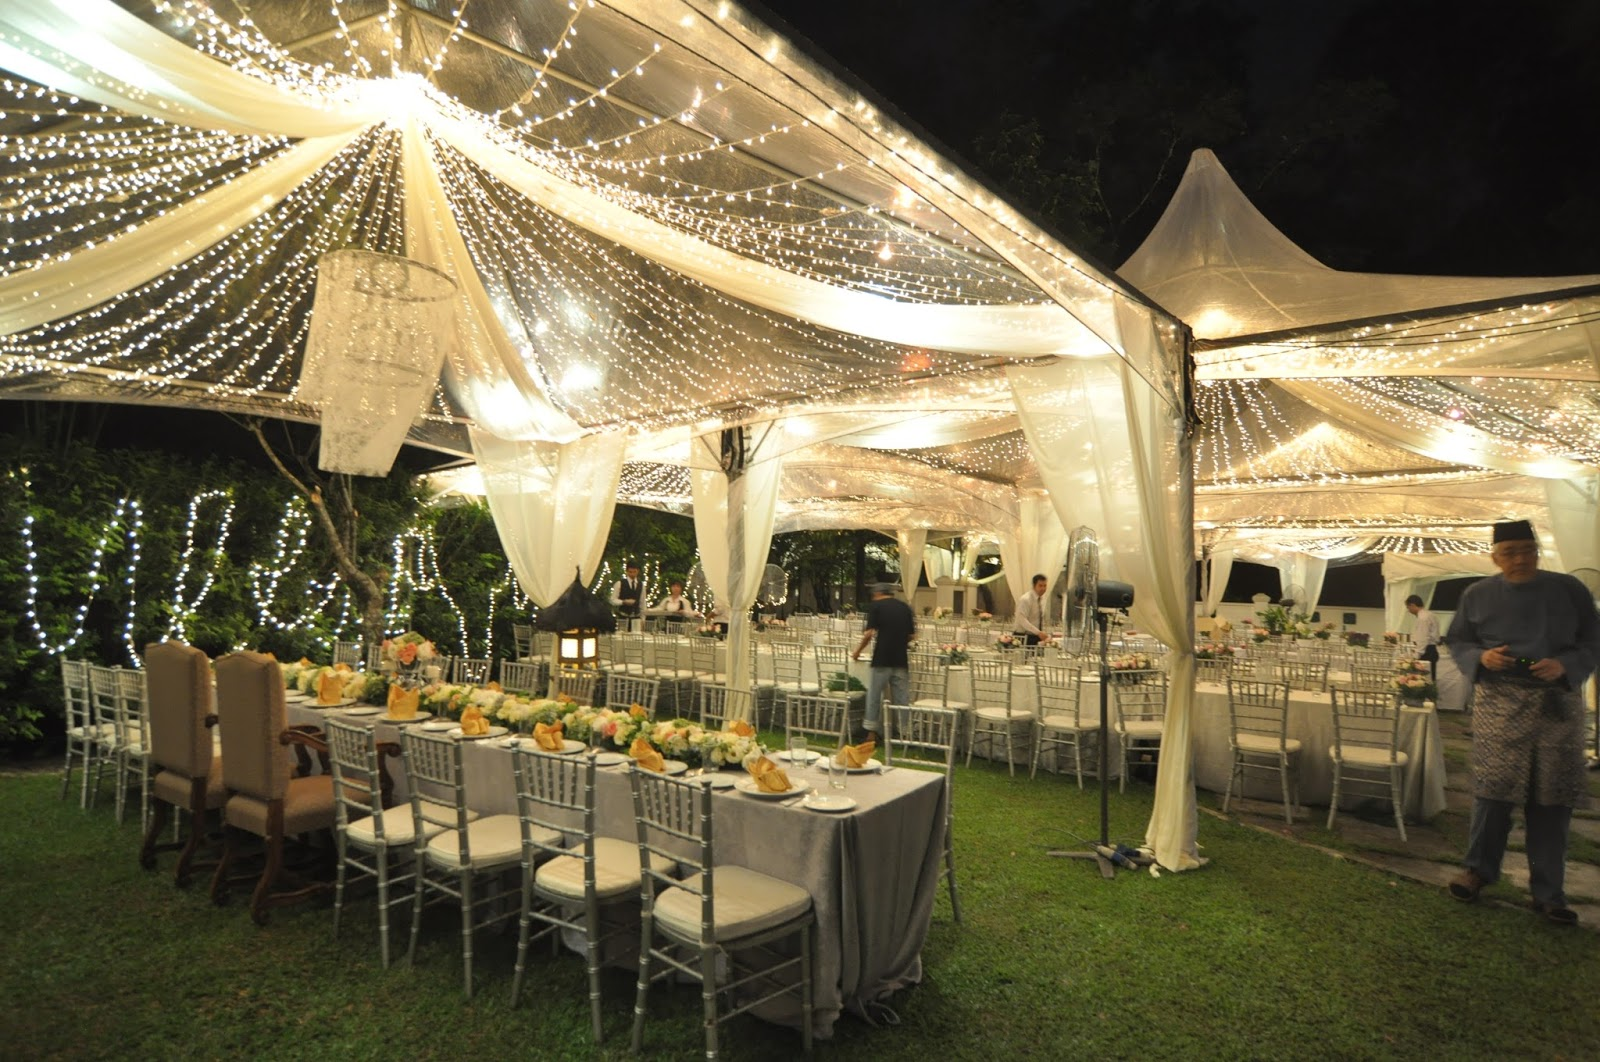 Jb Lighting Service Khareyan Events Transparent Tents